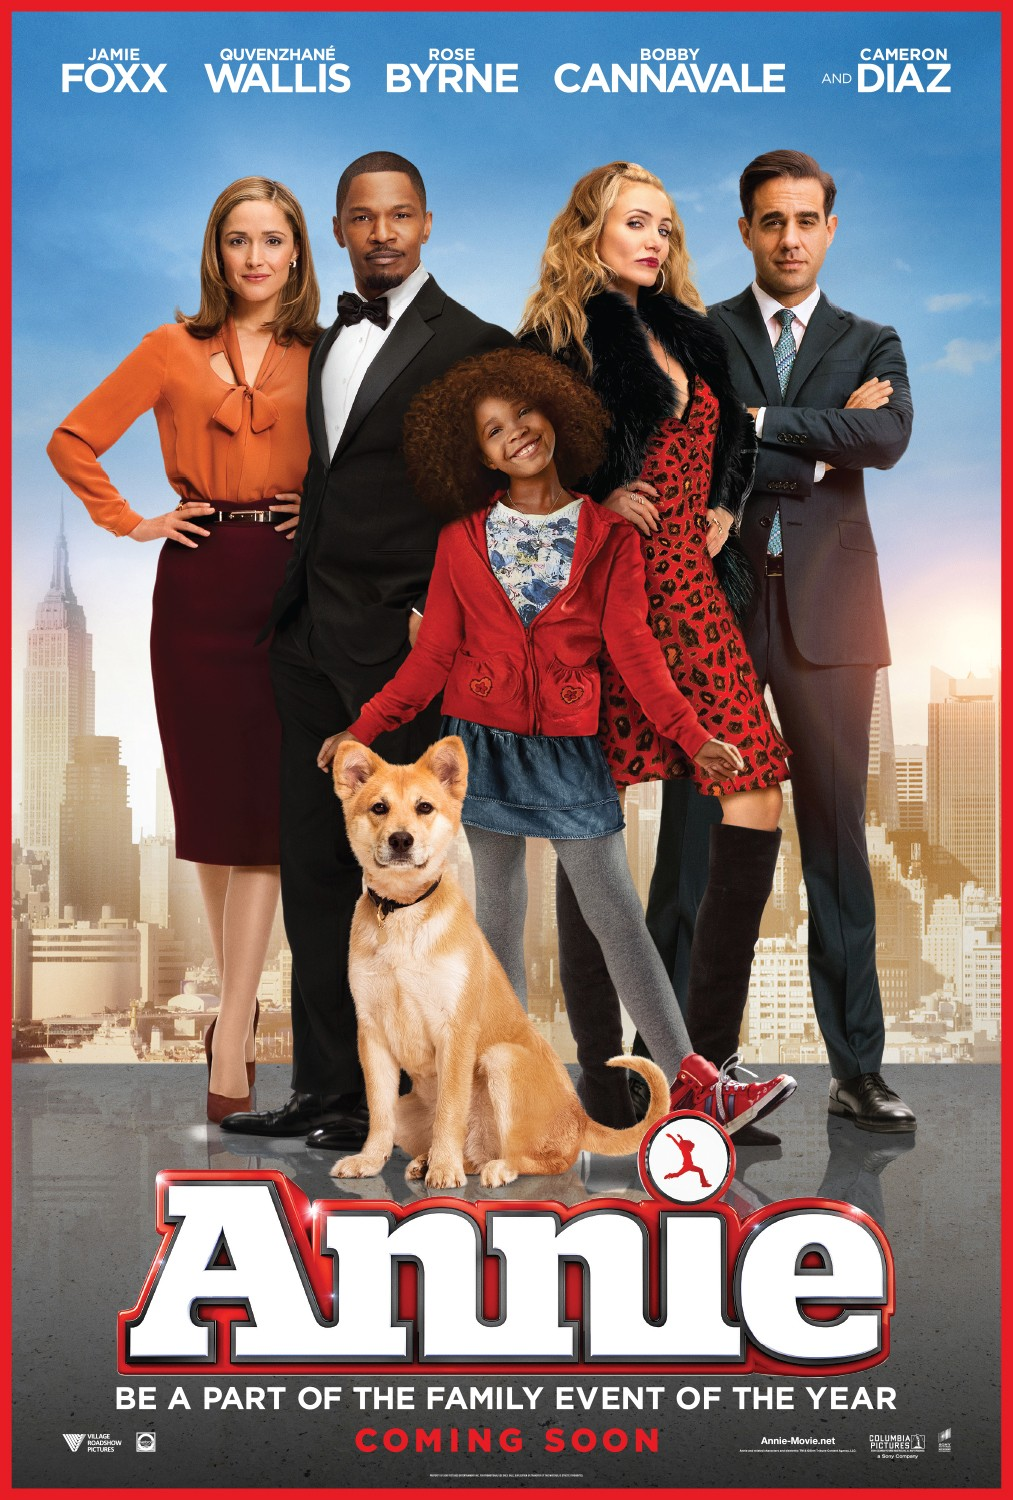 Annie-Official Poster Banner PROMO XLG-11SETEMBRO2014-01